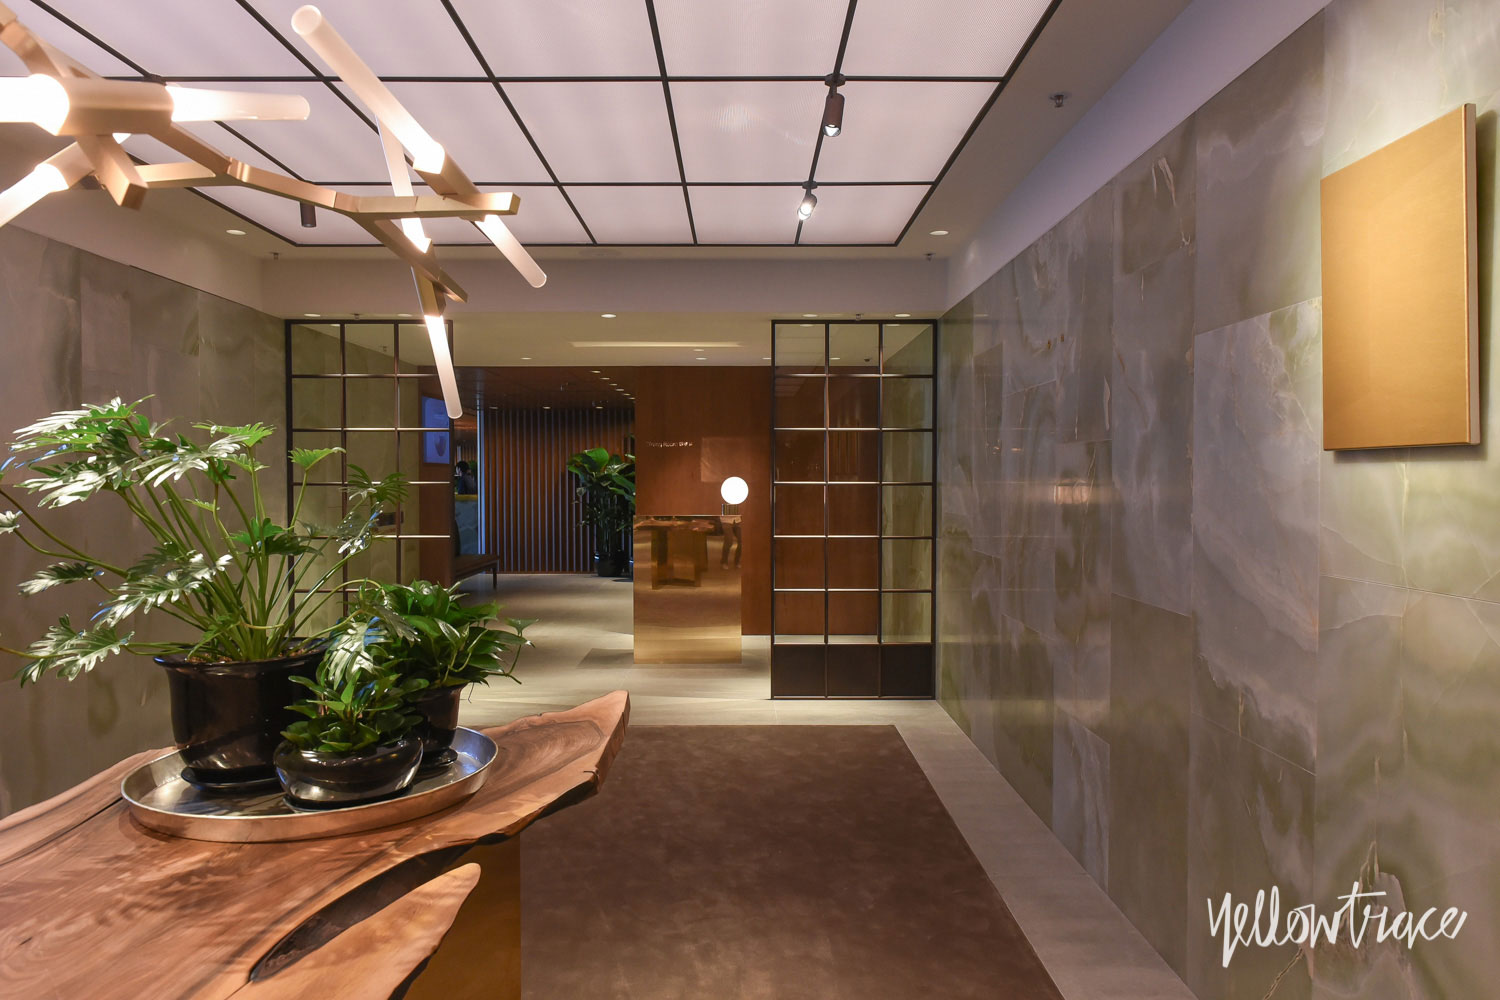 Cathay Pacific's The Pier First Class Lounge in Hong Kong by Ilse Crawford of Studioilse   Photo by Nick Hughes, Yellowtrace